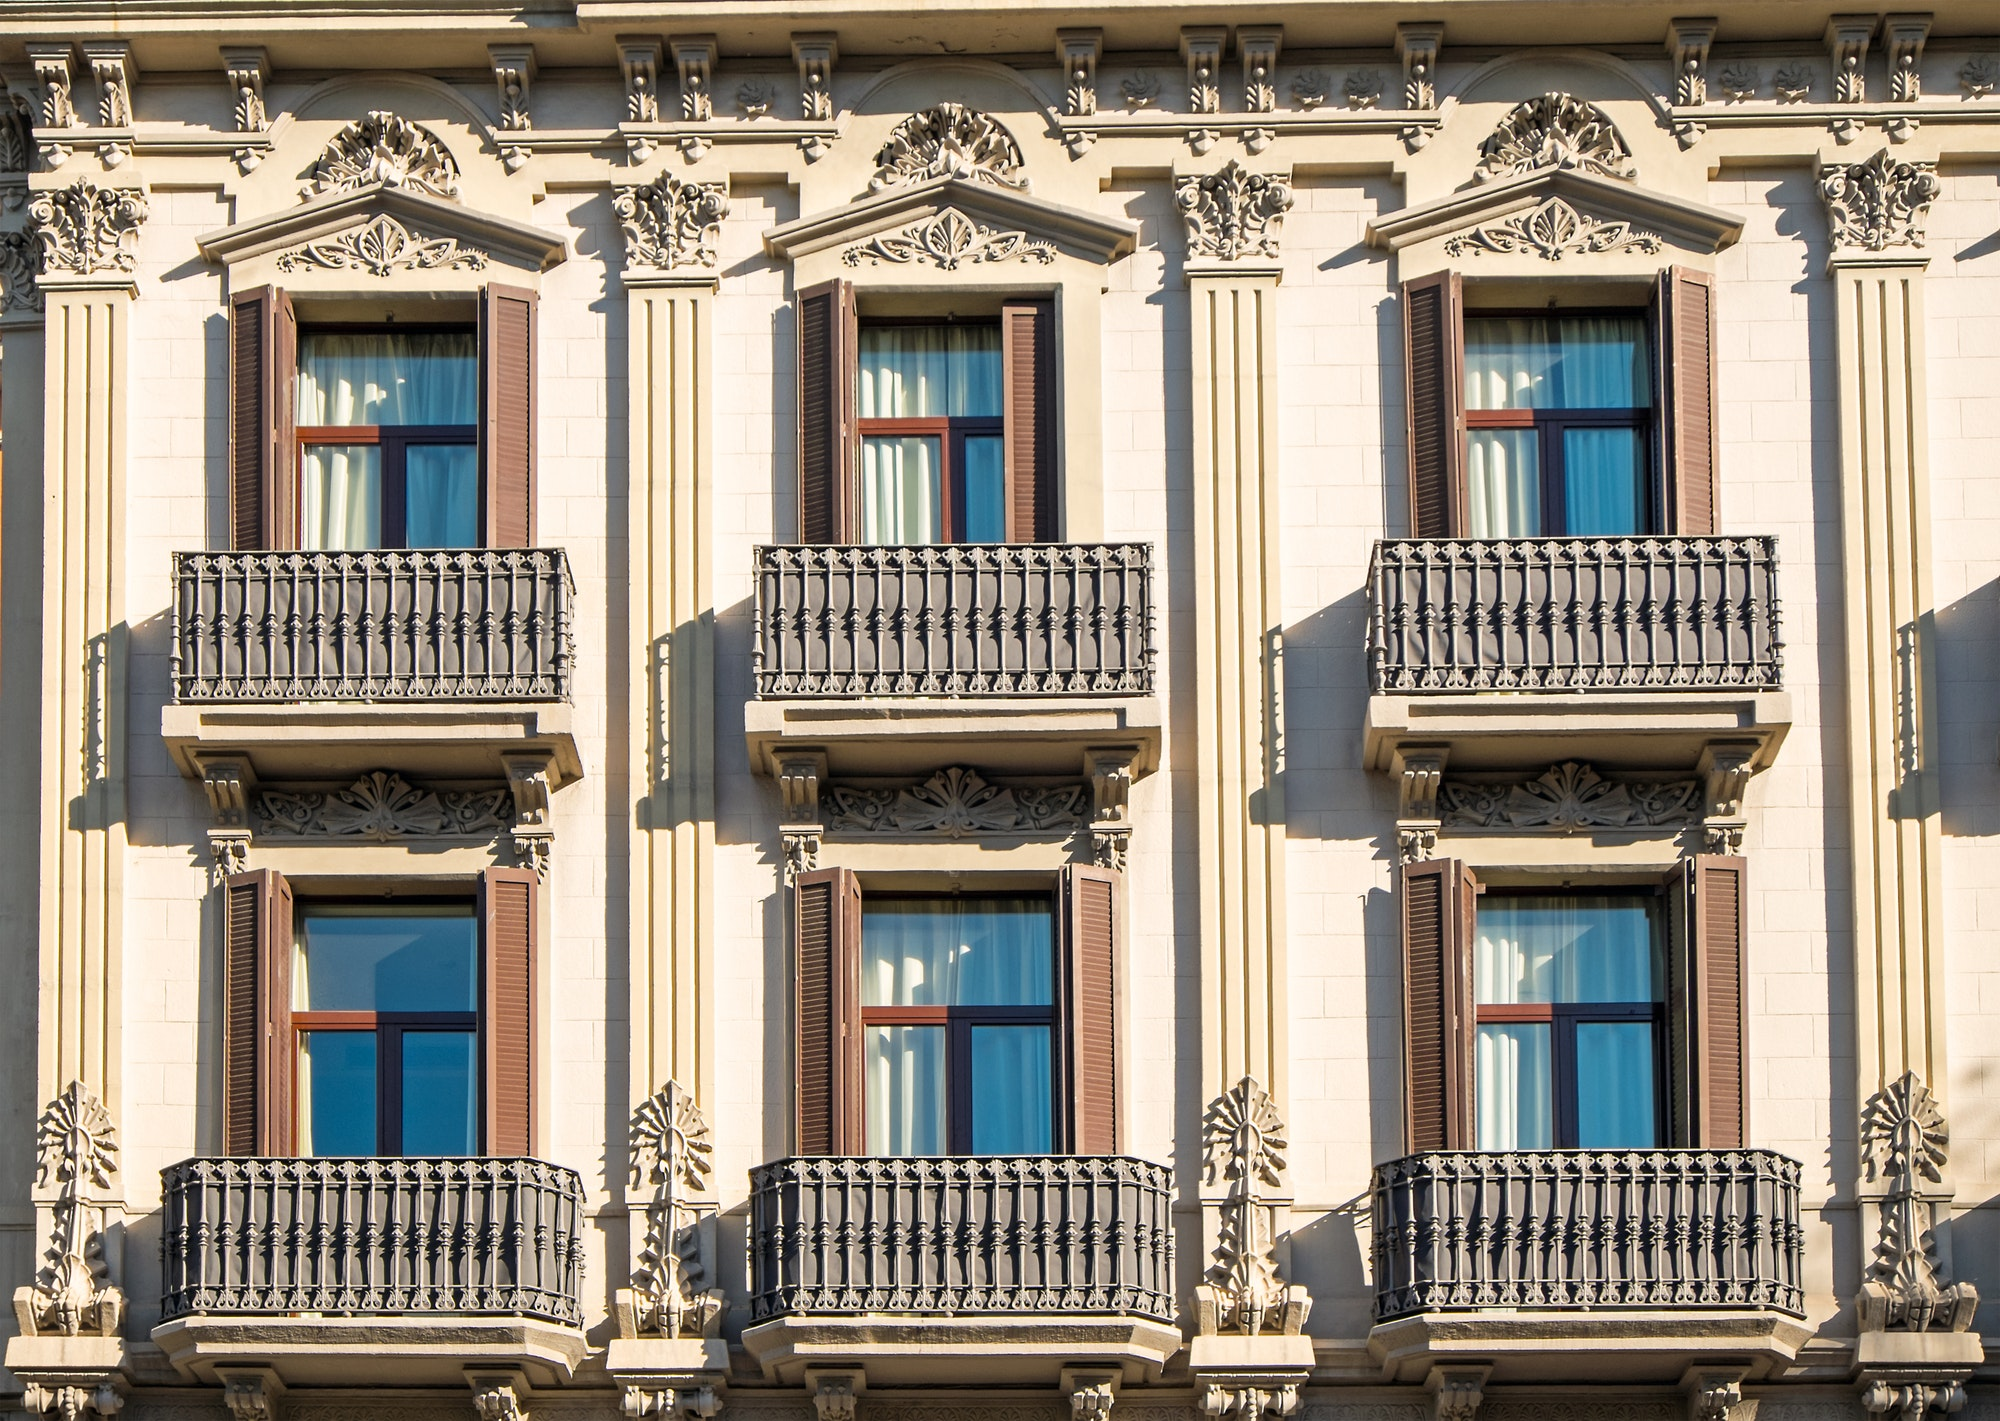 Facade with balconies in Barcelona